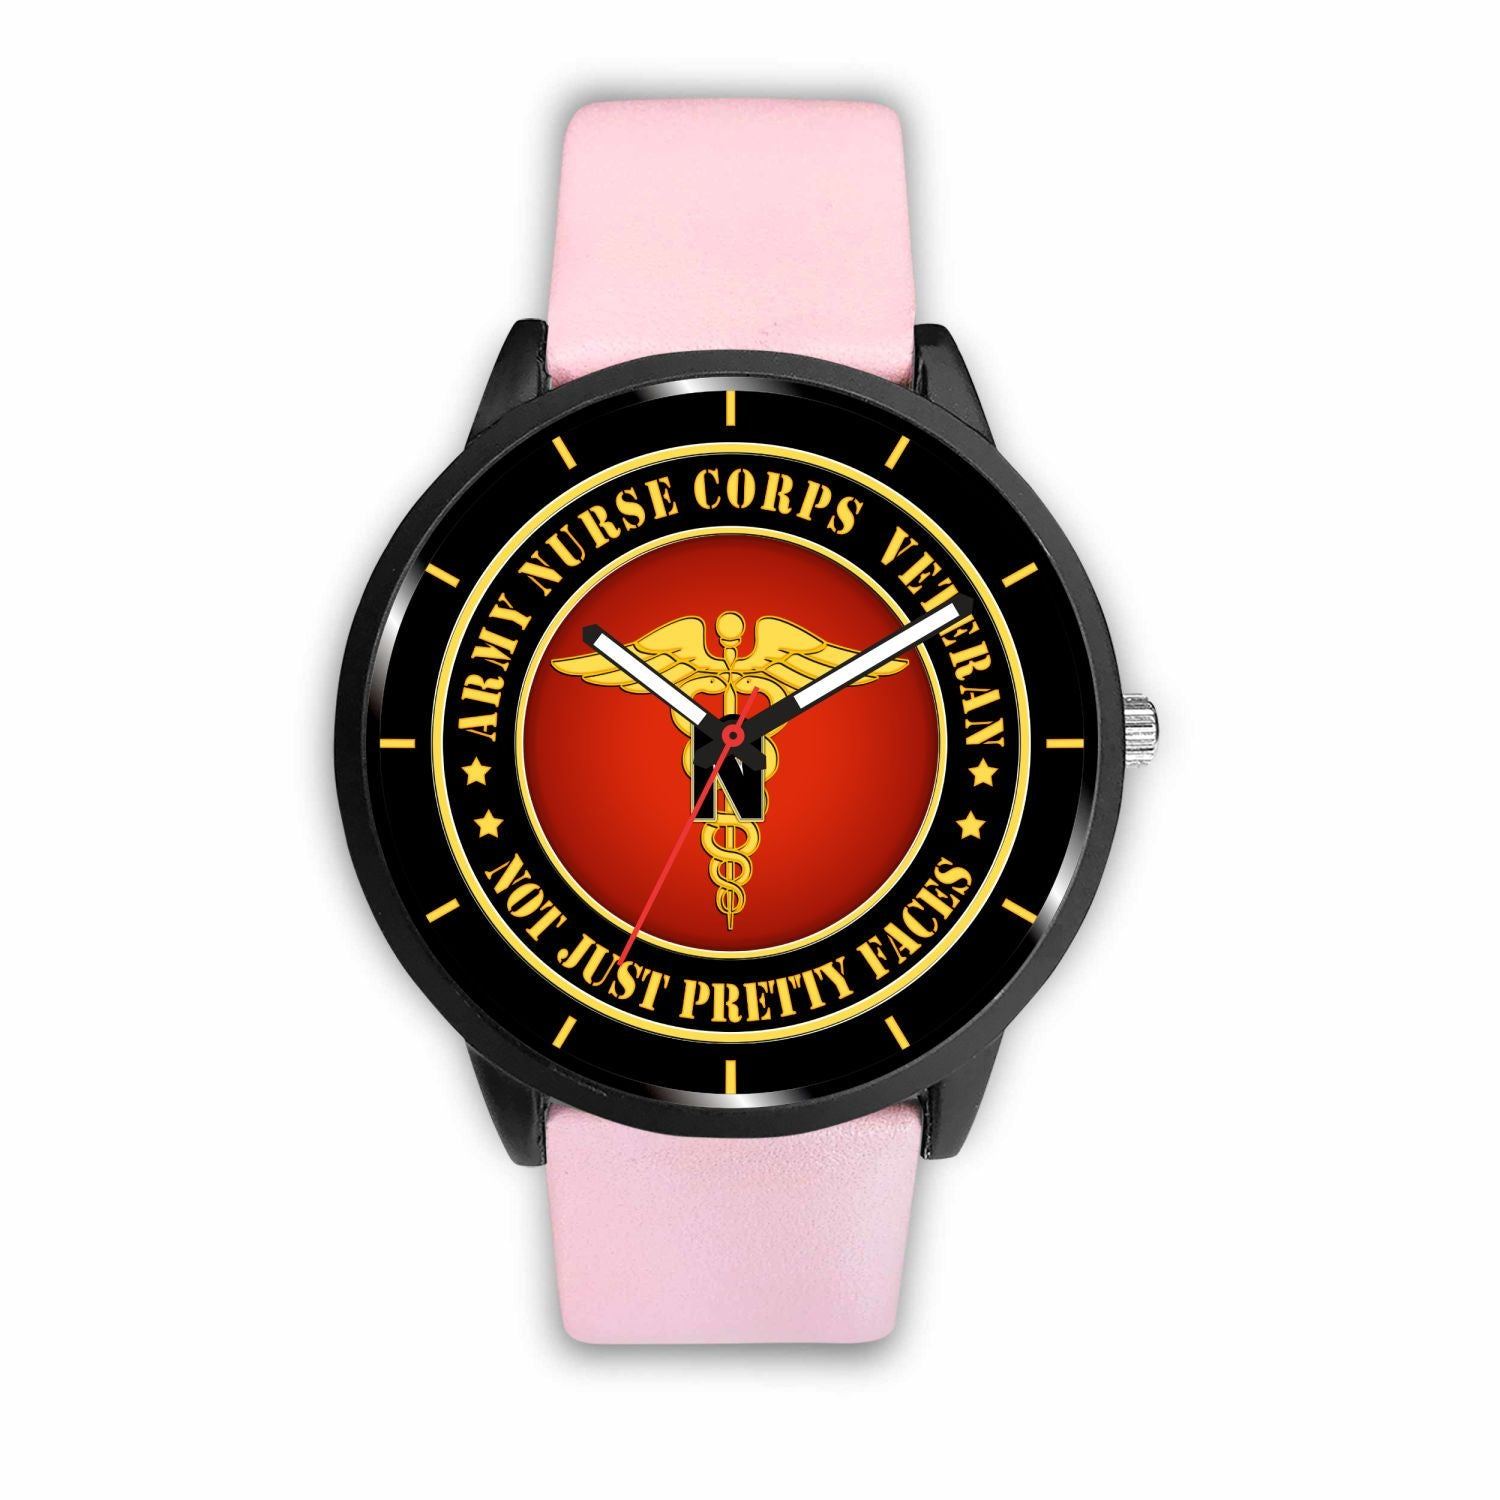 Buy army nurse corps veteran - not just pretty faces watch - Familyloves hoodies t-shirt jacket mug cheapest free shipping 50% off